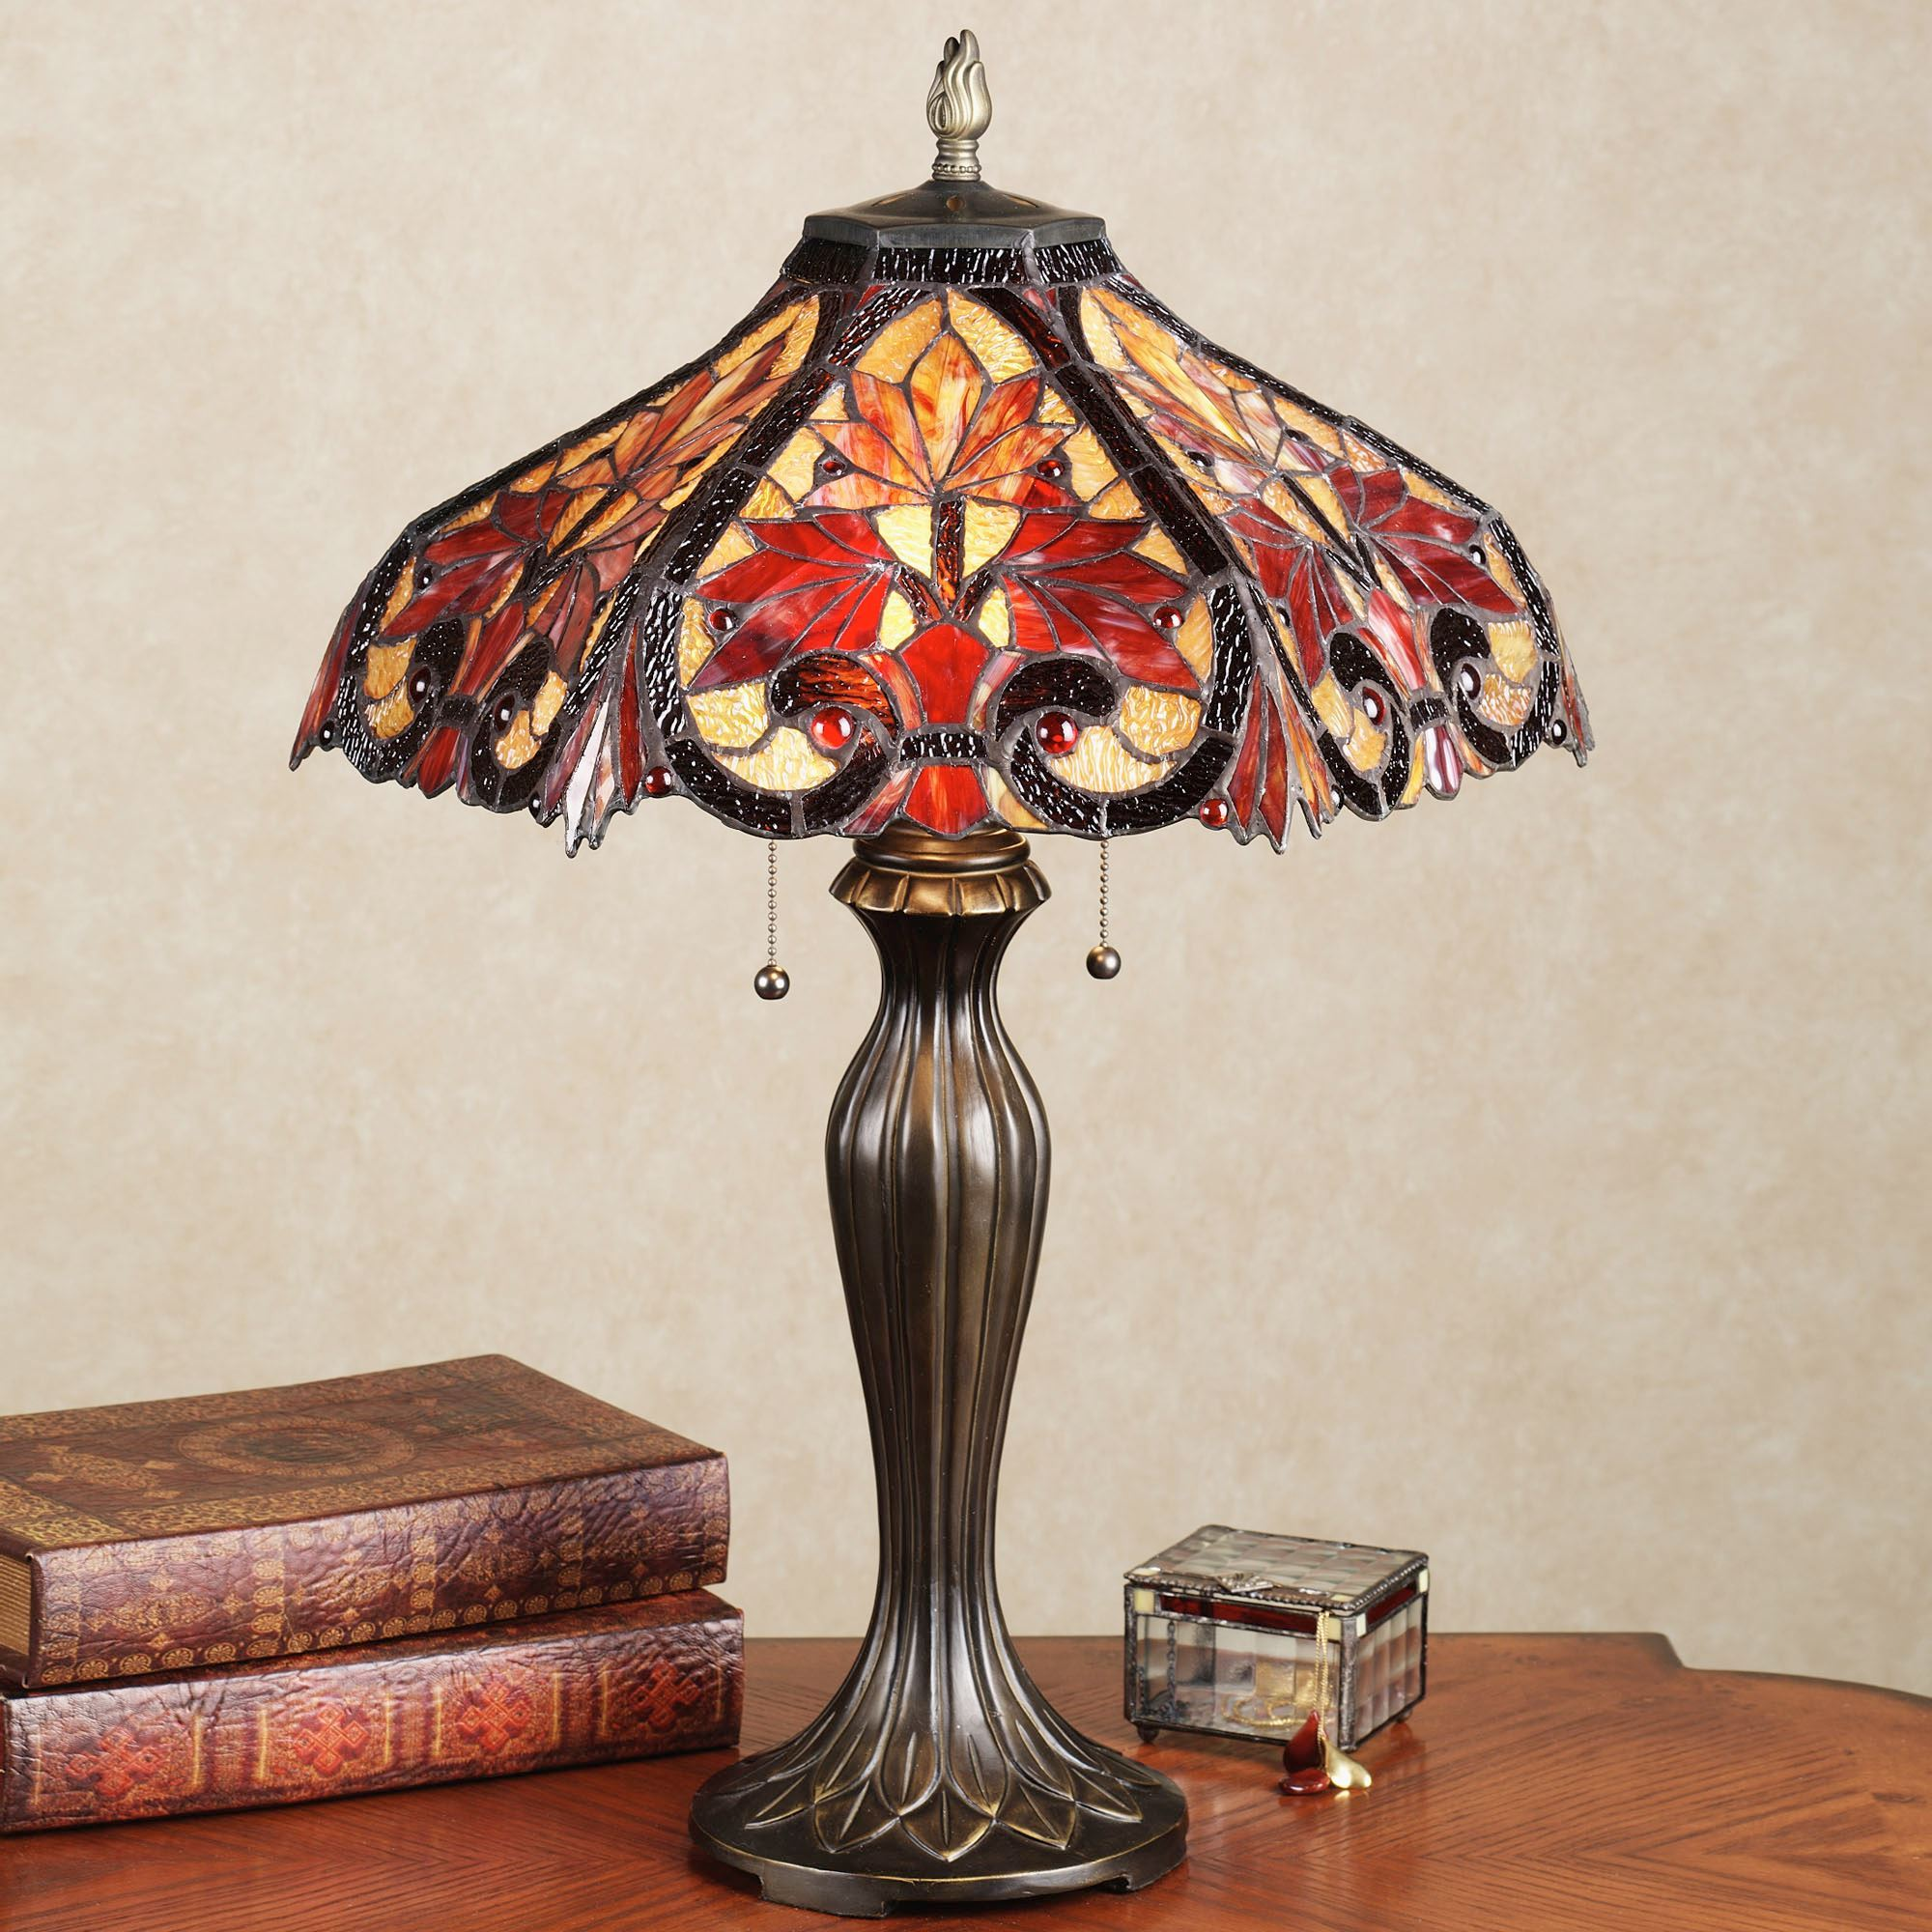 Whispering Foliage Stained Glass Table Lamp